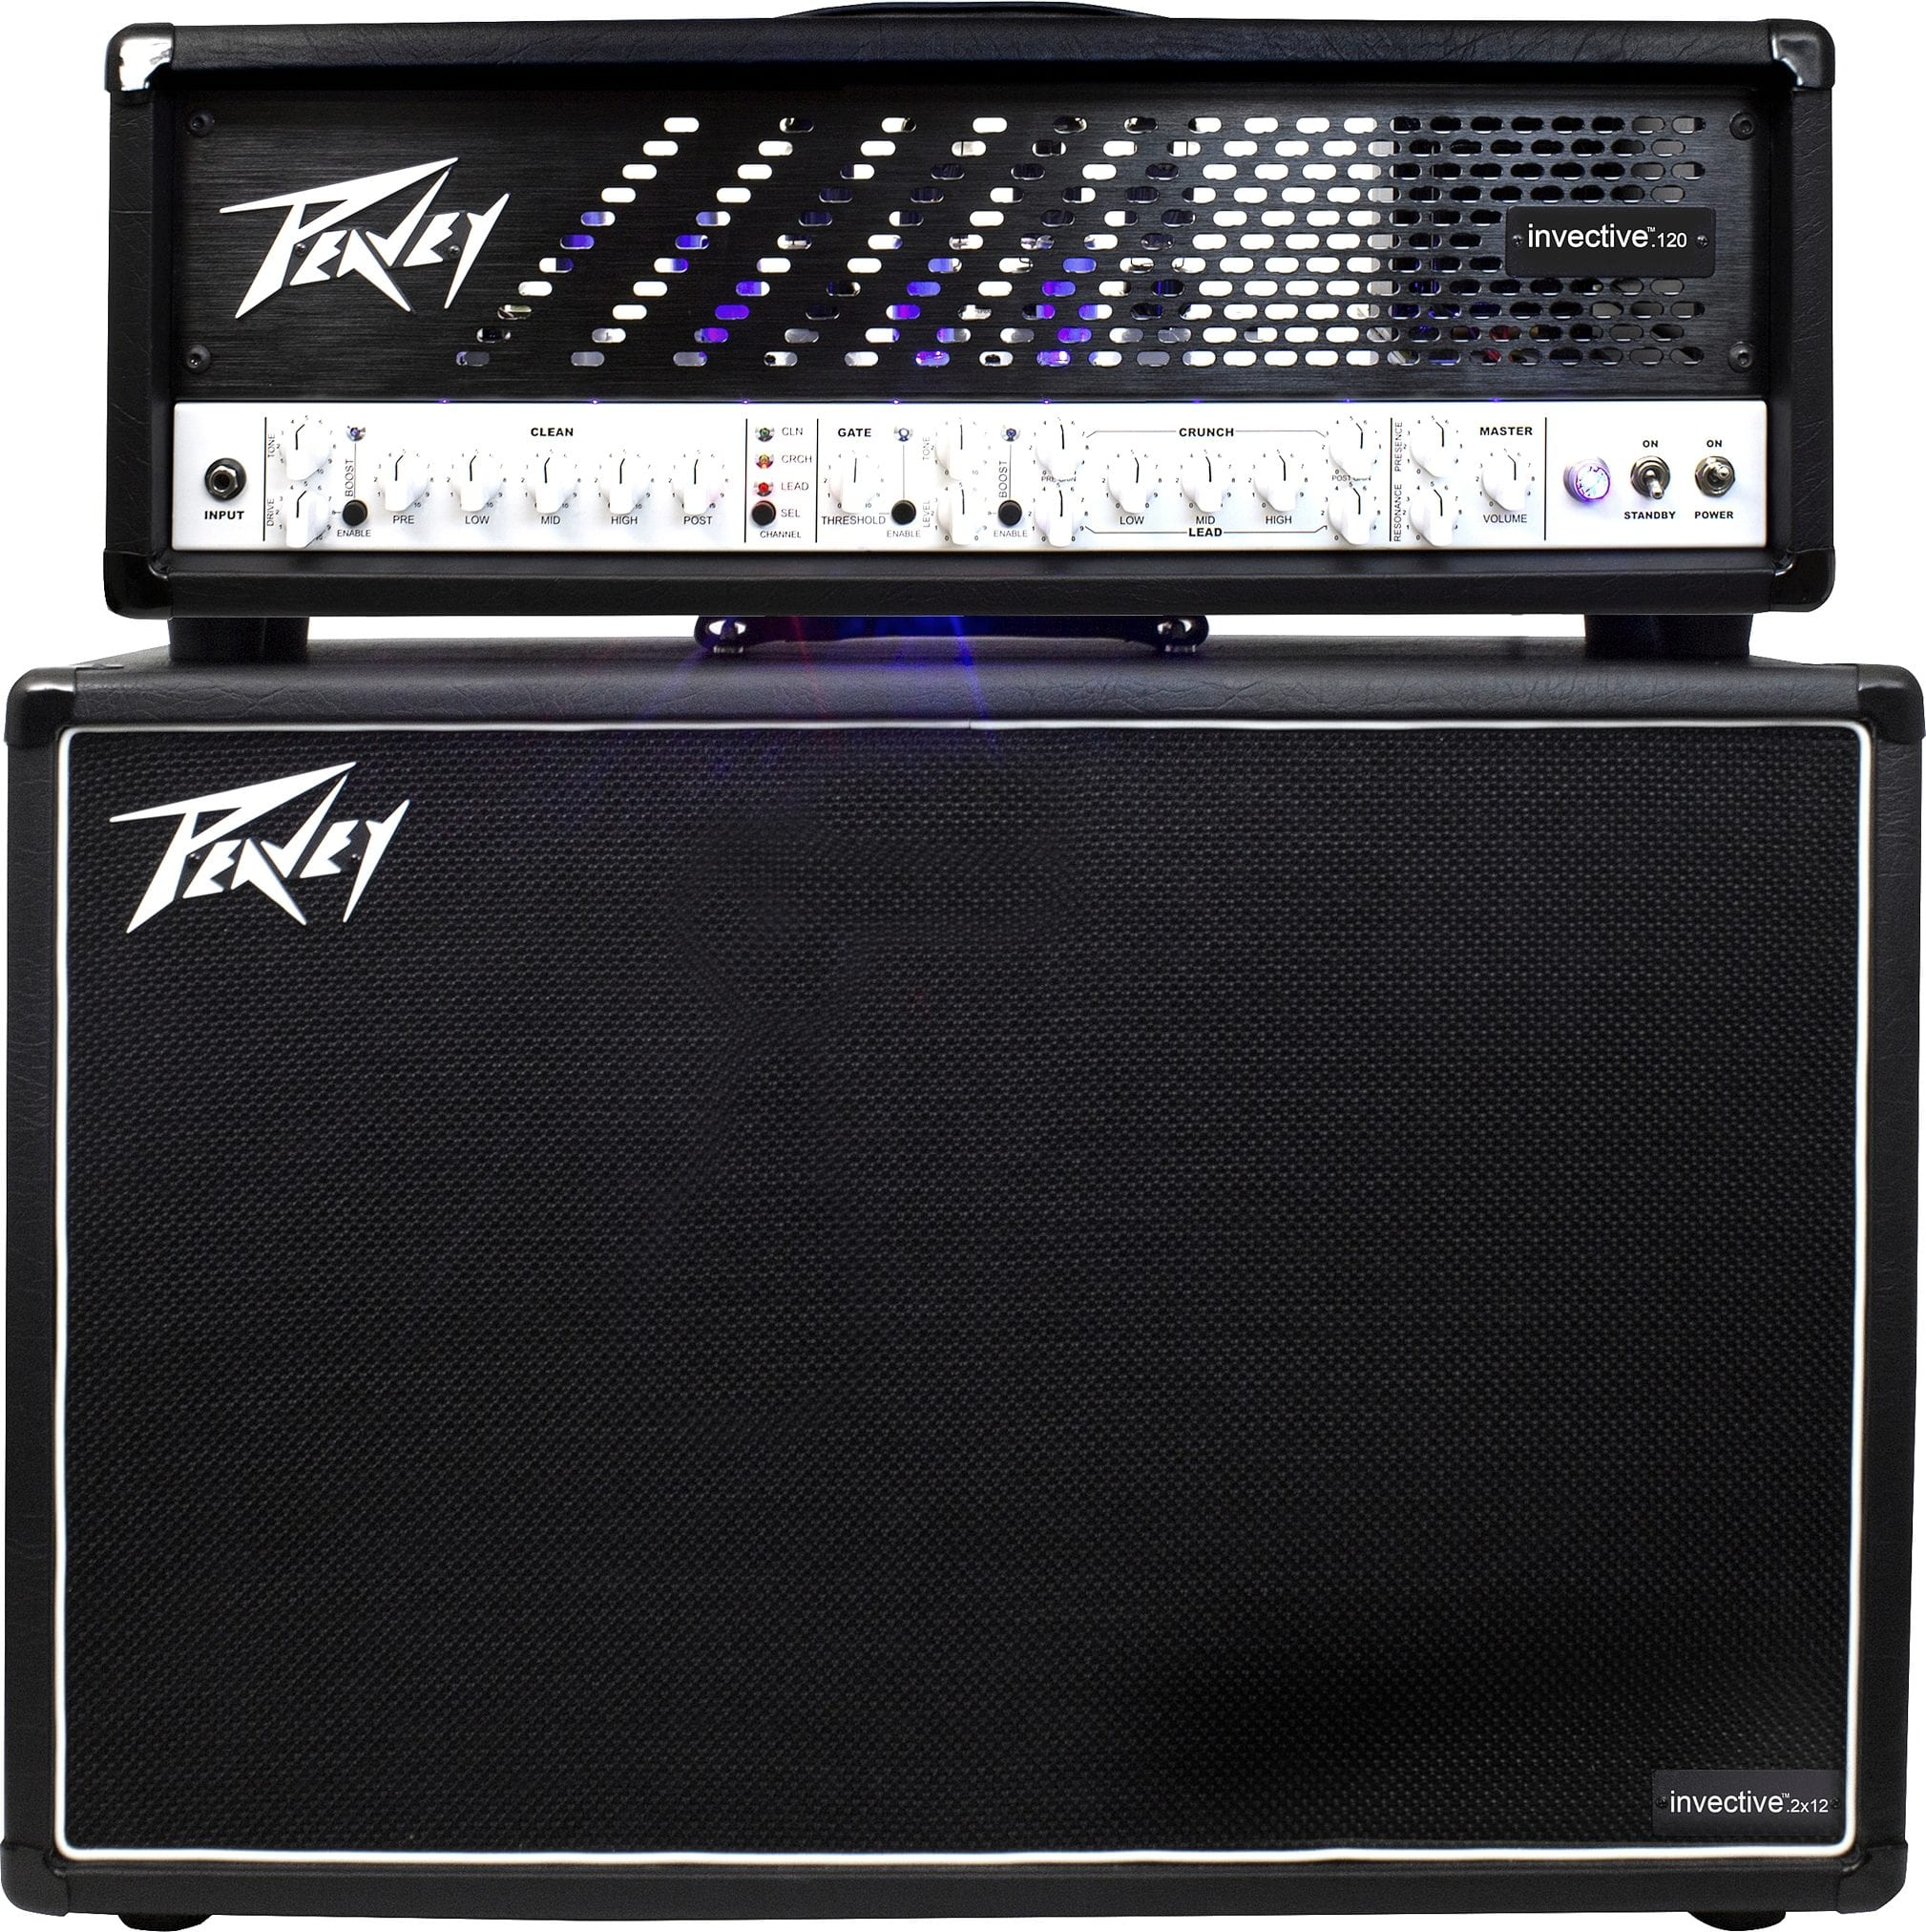 PEAVEY INVECTIVE.120 HEAD + INVECTIVE.212 CABINET